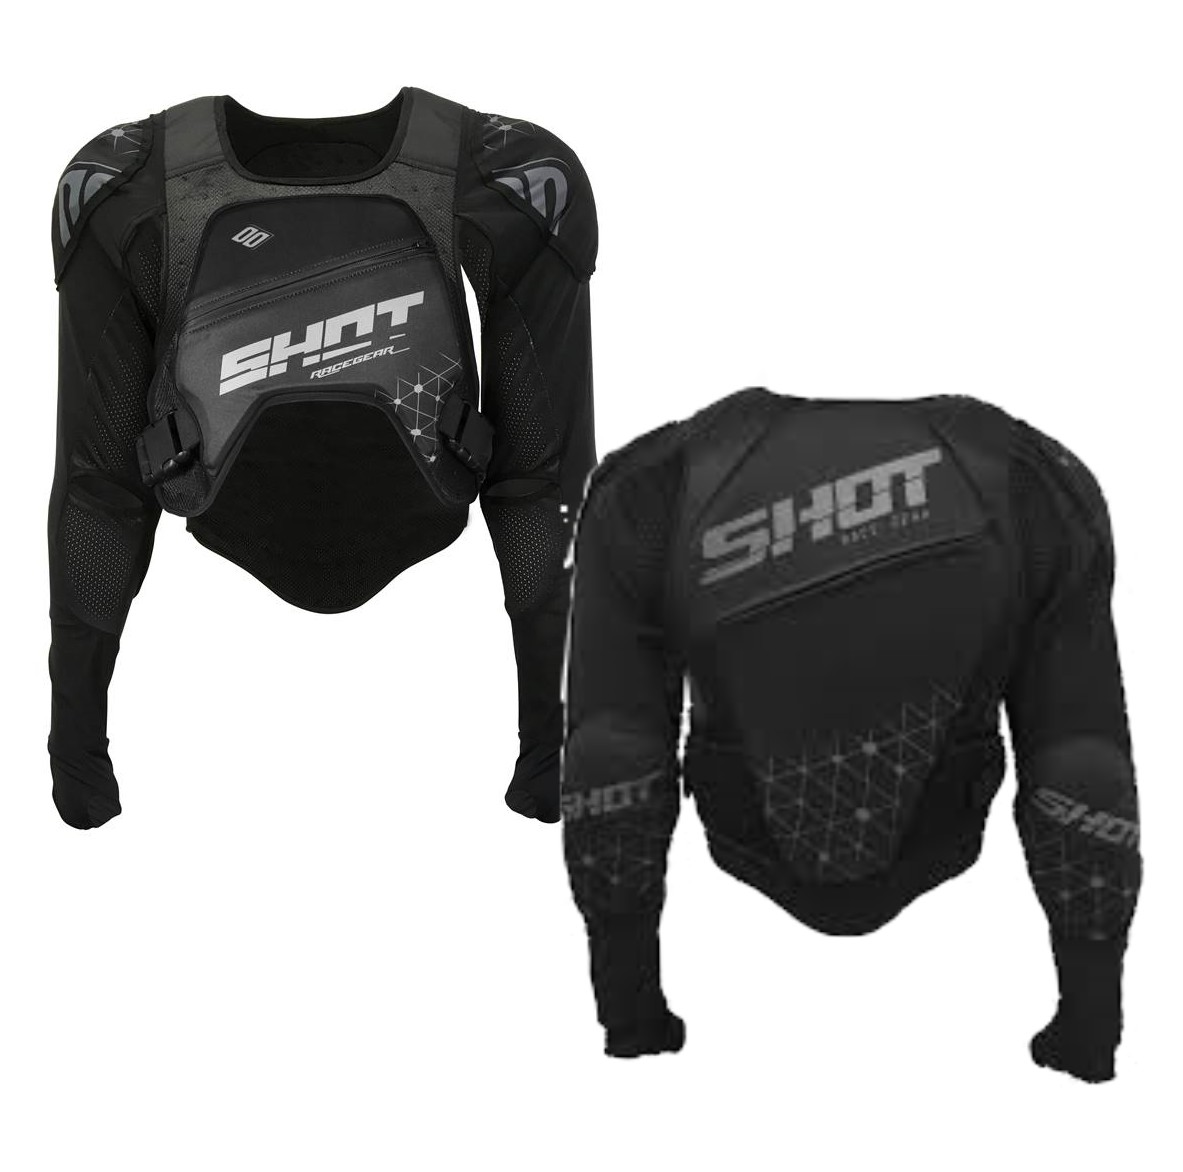 GILET protection SHOT BMX BIKE ULTRA LIGHT ENFANT ADO 5 à 13 ans